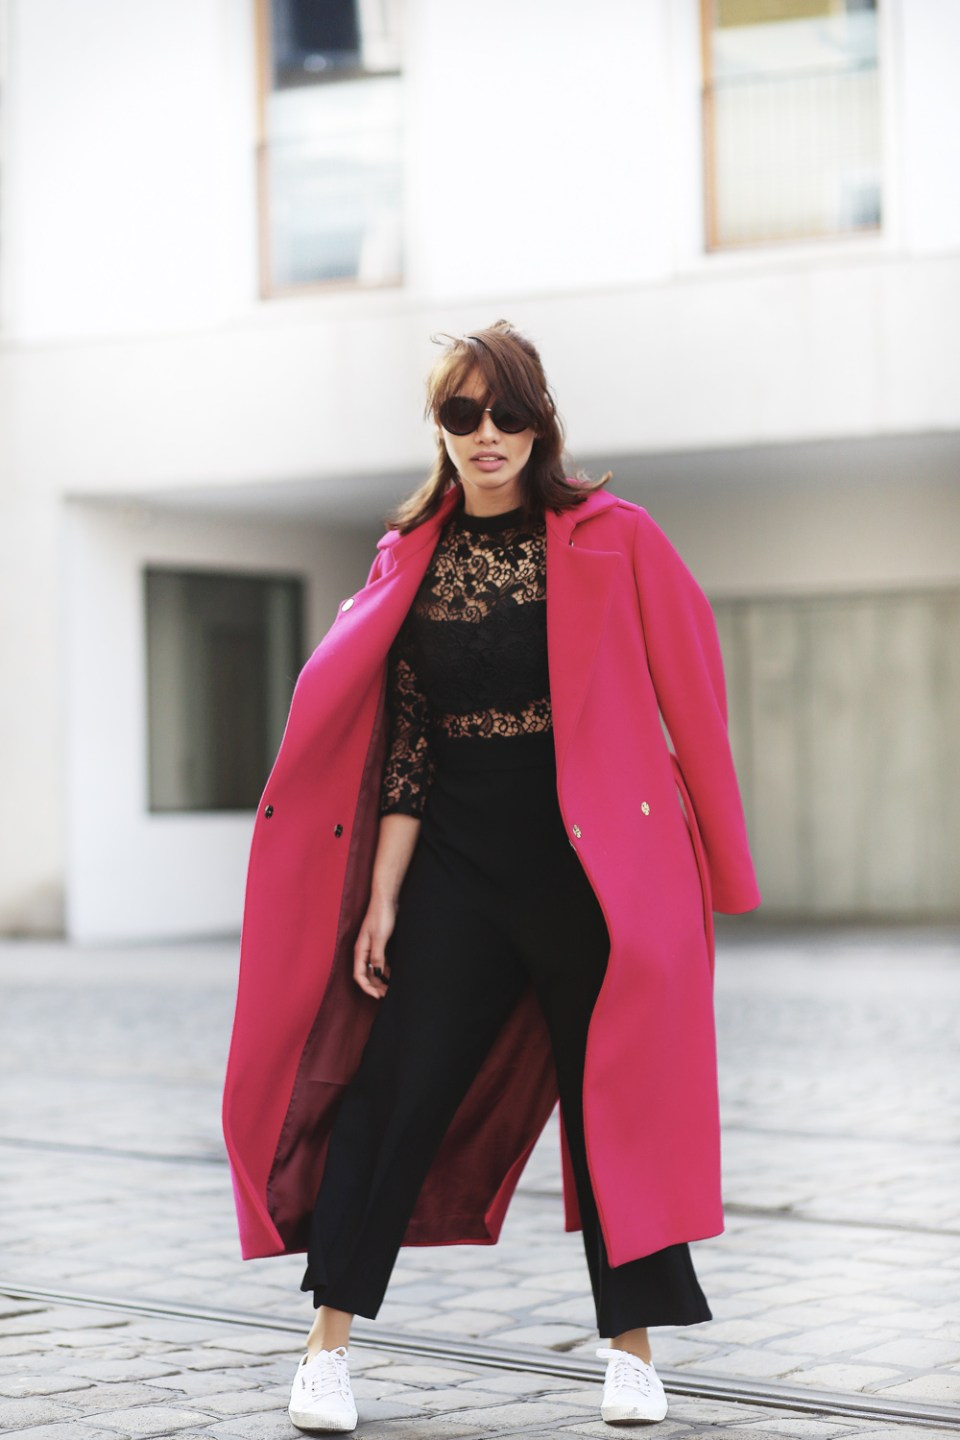 PINK-MANTEL-COAT-LACE-OVERALL-CULOTTES-SUPERGA-ZARA-THEFASHIONANARCHY-LOOK-STYLE-OUTFIT-SNEAKER-BLACK-SPITZE-FASHIONBLOG-MODEBLOG-STYLEBLOG-MUNICH-DIANABUENGER-1